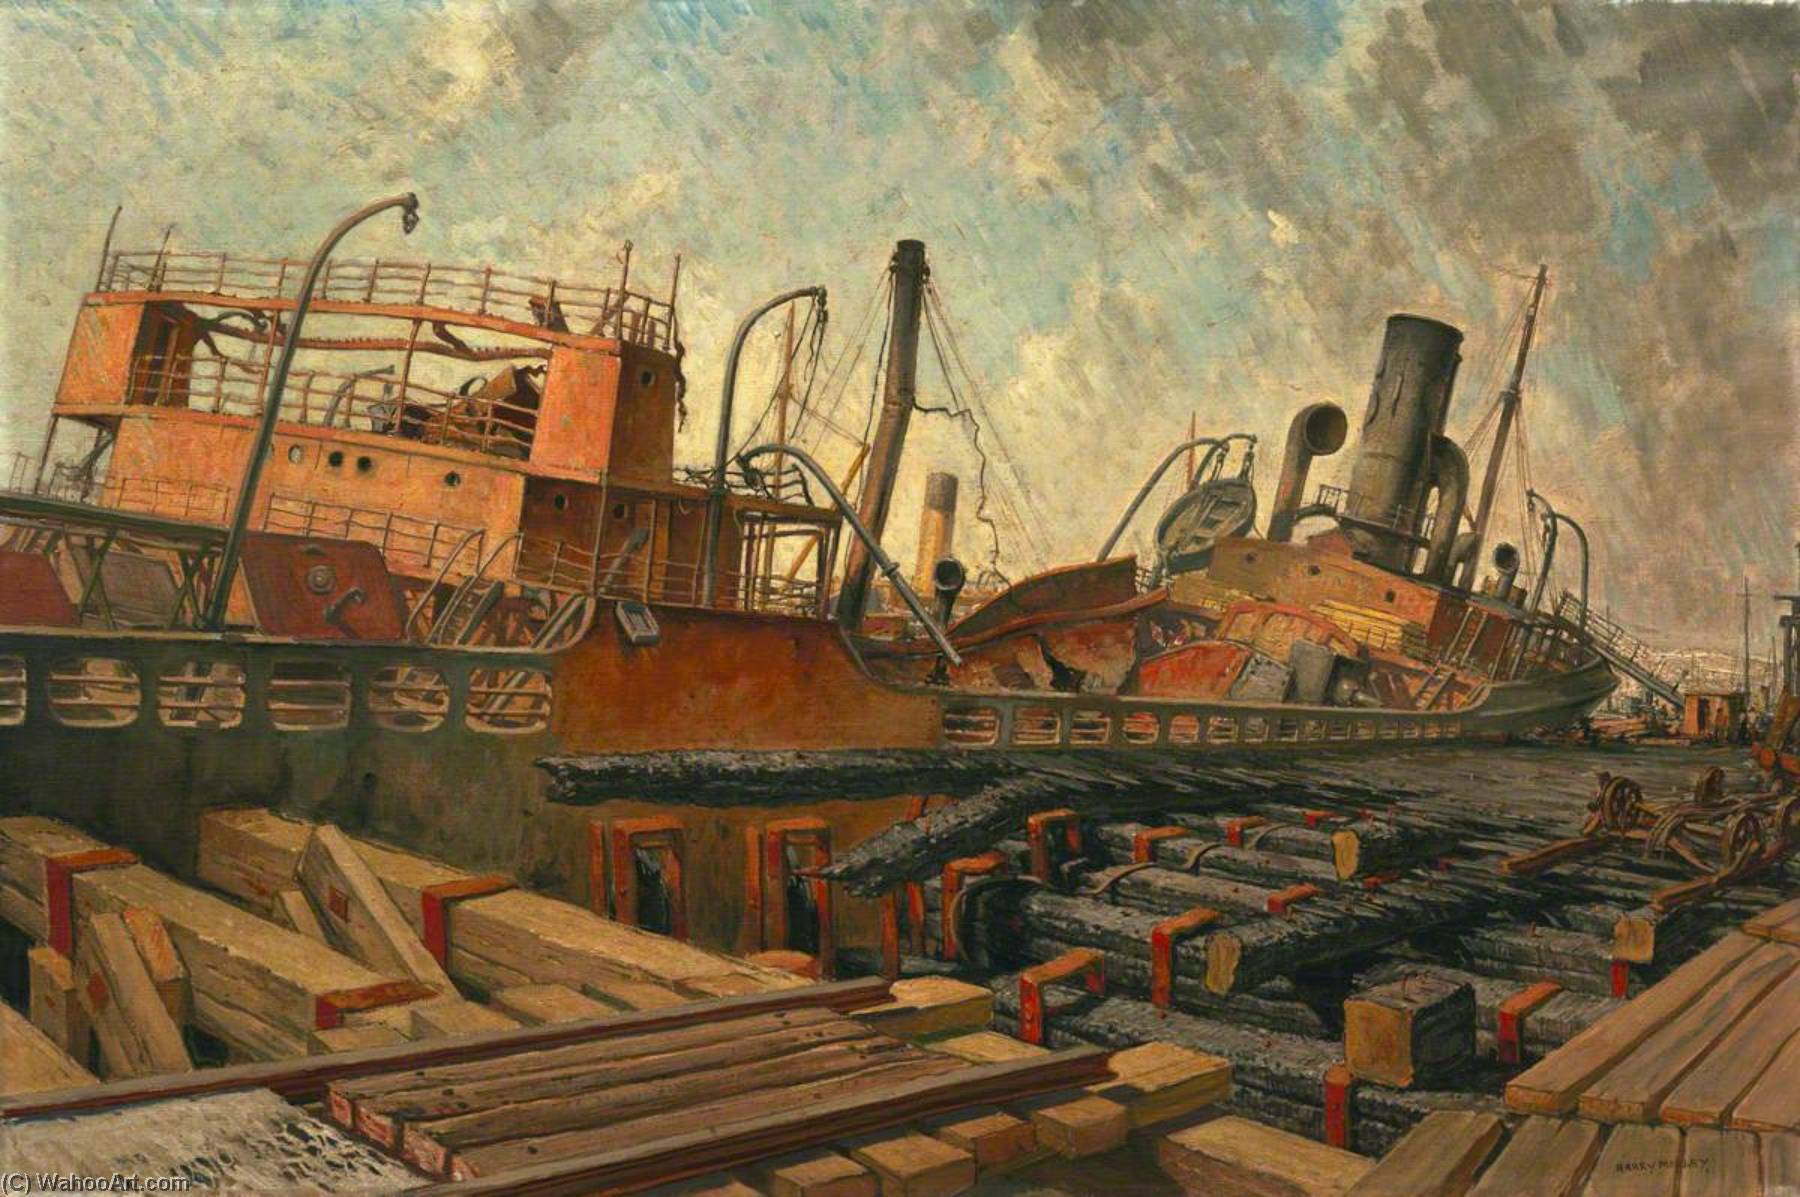 Wikioo.org - The Encyclopedia of Fine Arts - Painting, Artwork by Harry Morley - The Bombed SS 'Toscalusa' at a Western Port